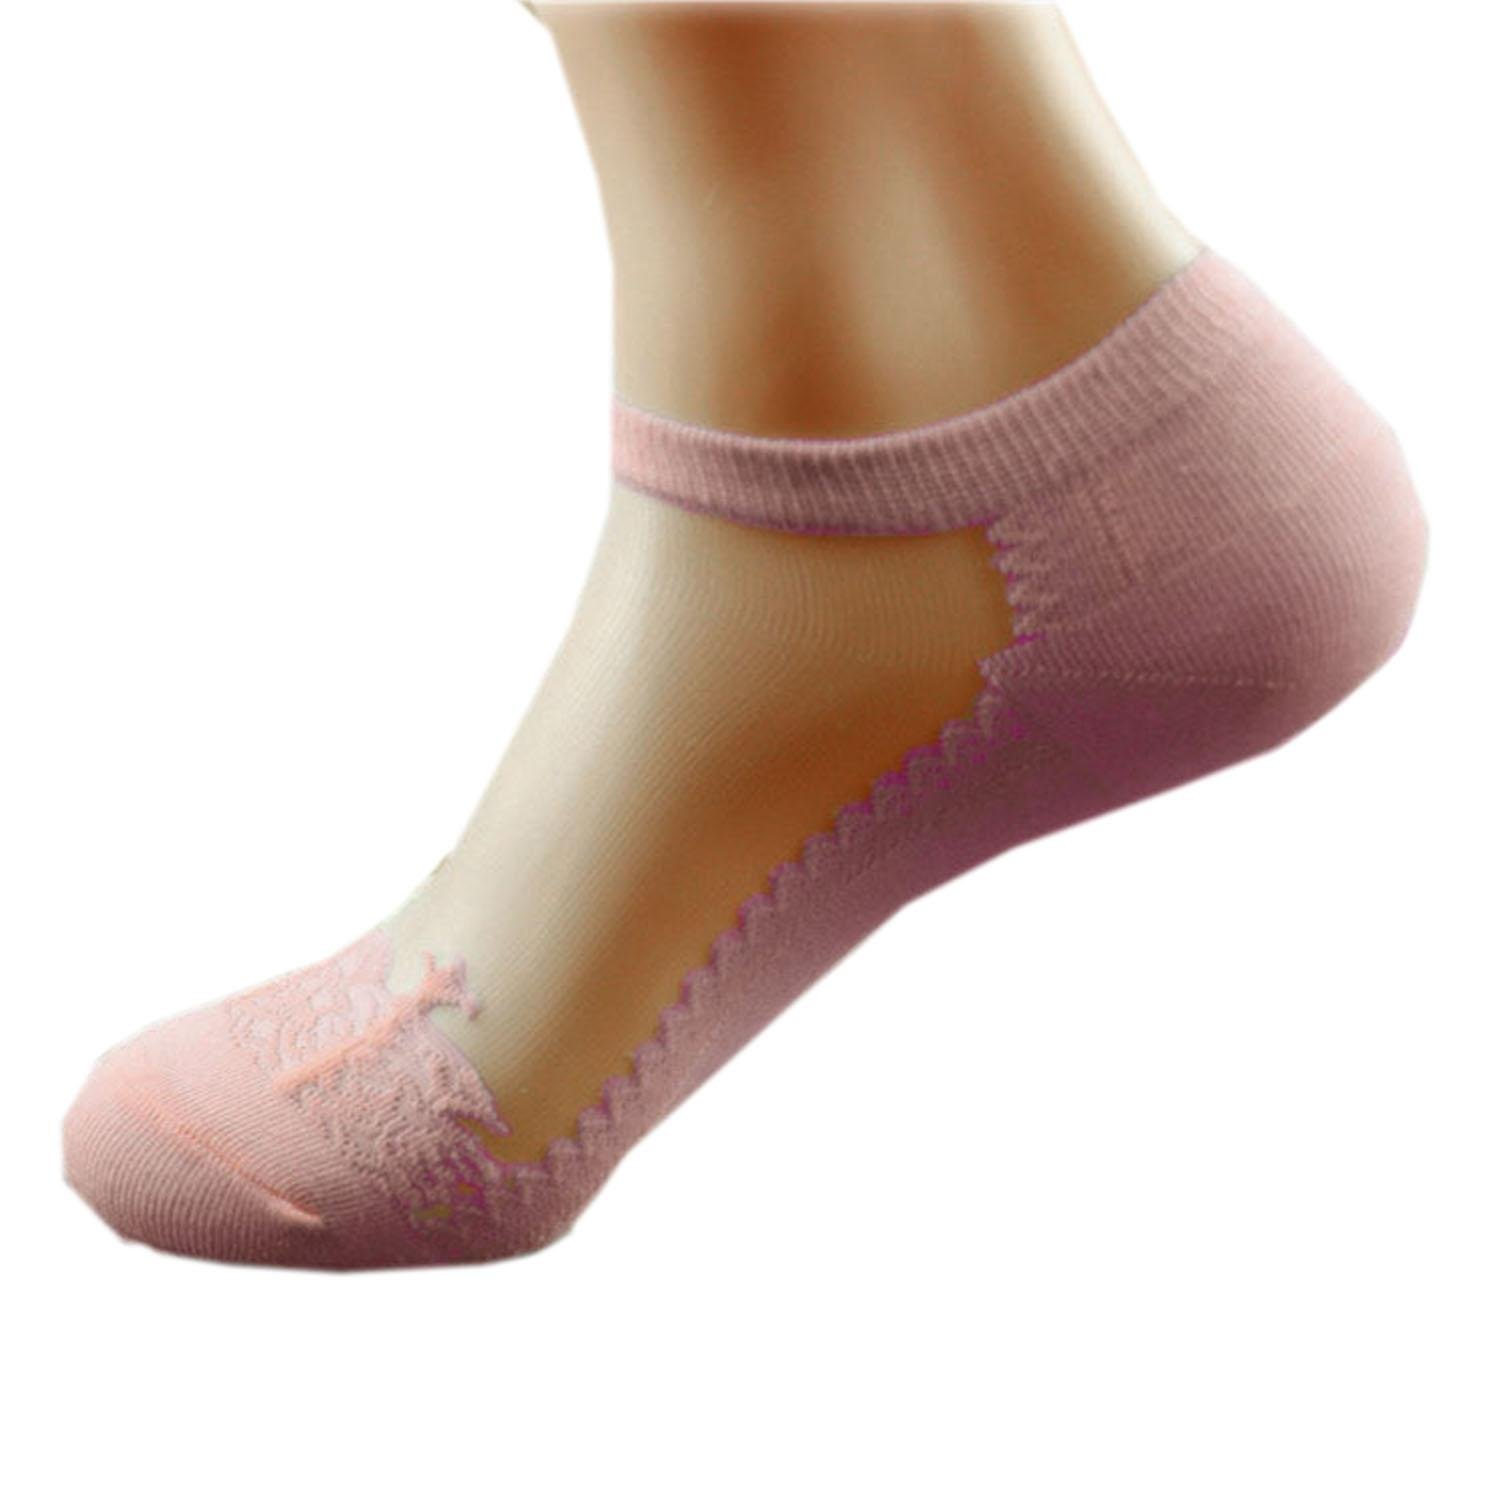 Evelove Cindere Women No Show Mesh Lace socks Invisible, t No Show & Liner Socks